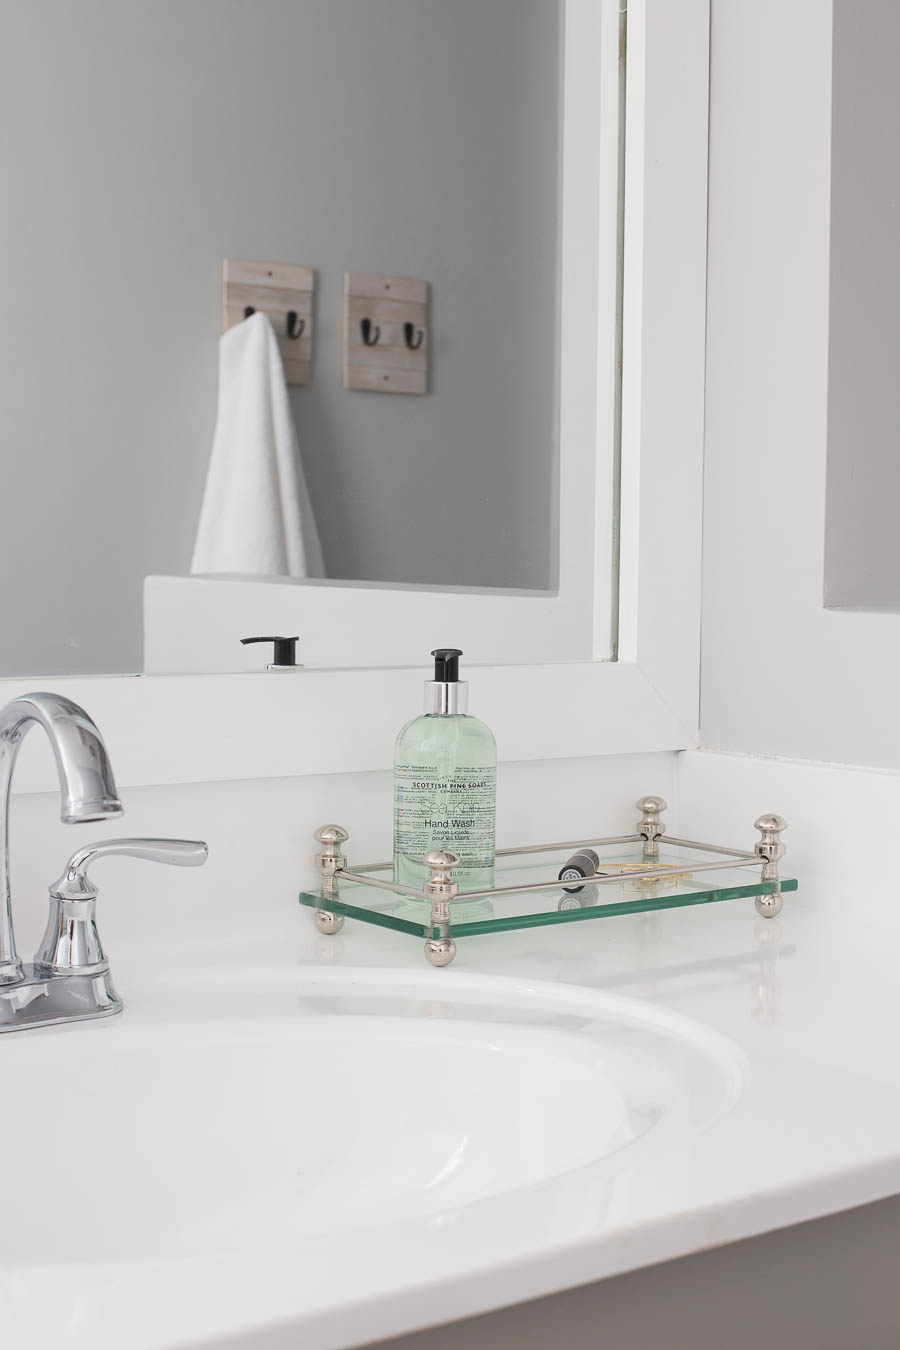 Can't replace your bathroom vanity? Refinish the bathroom countertop instead. This technique creates a beautiful clean look without spending much money